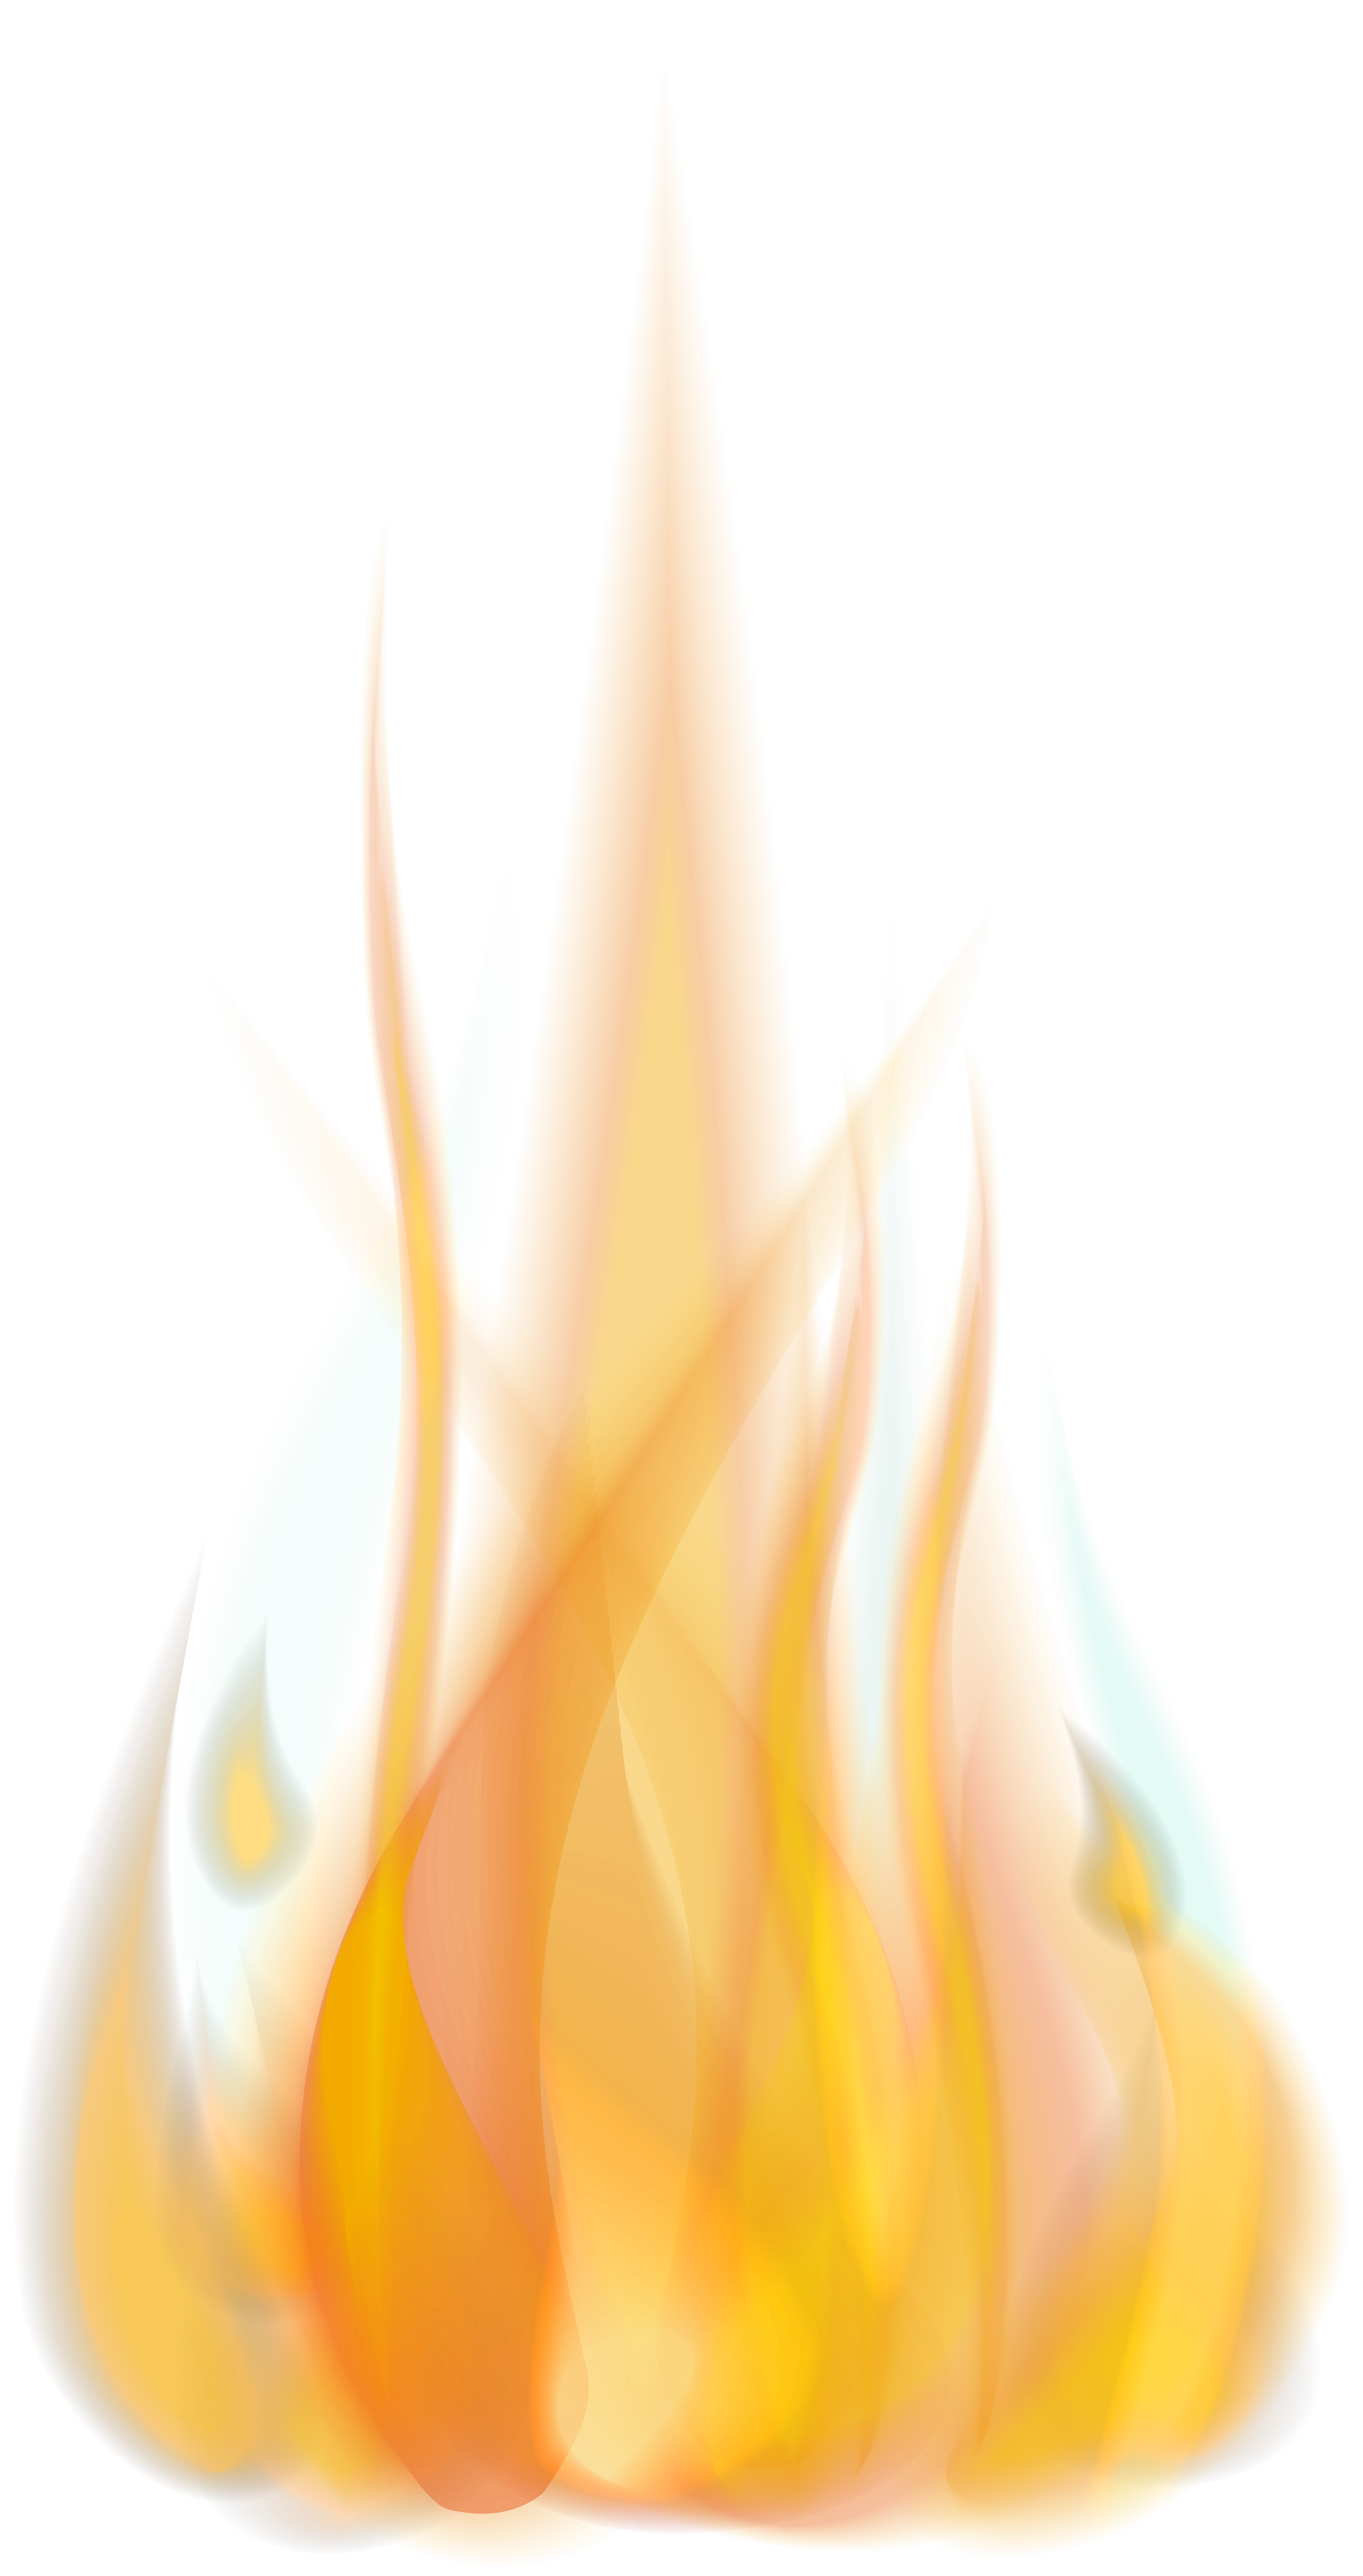 Clipart fire flame. Png clip art image